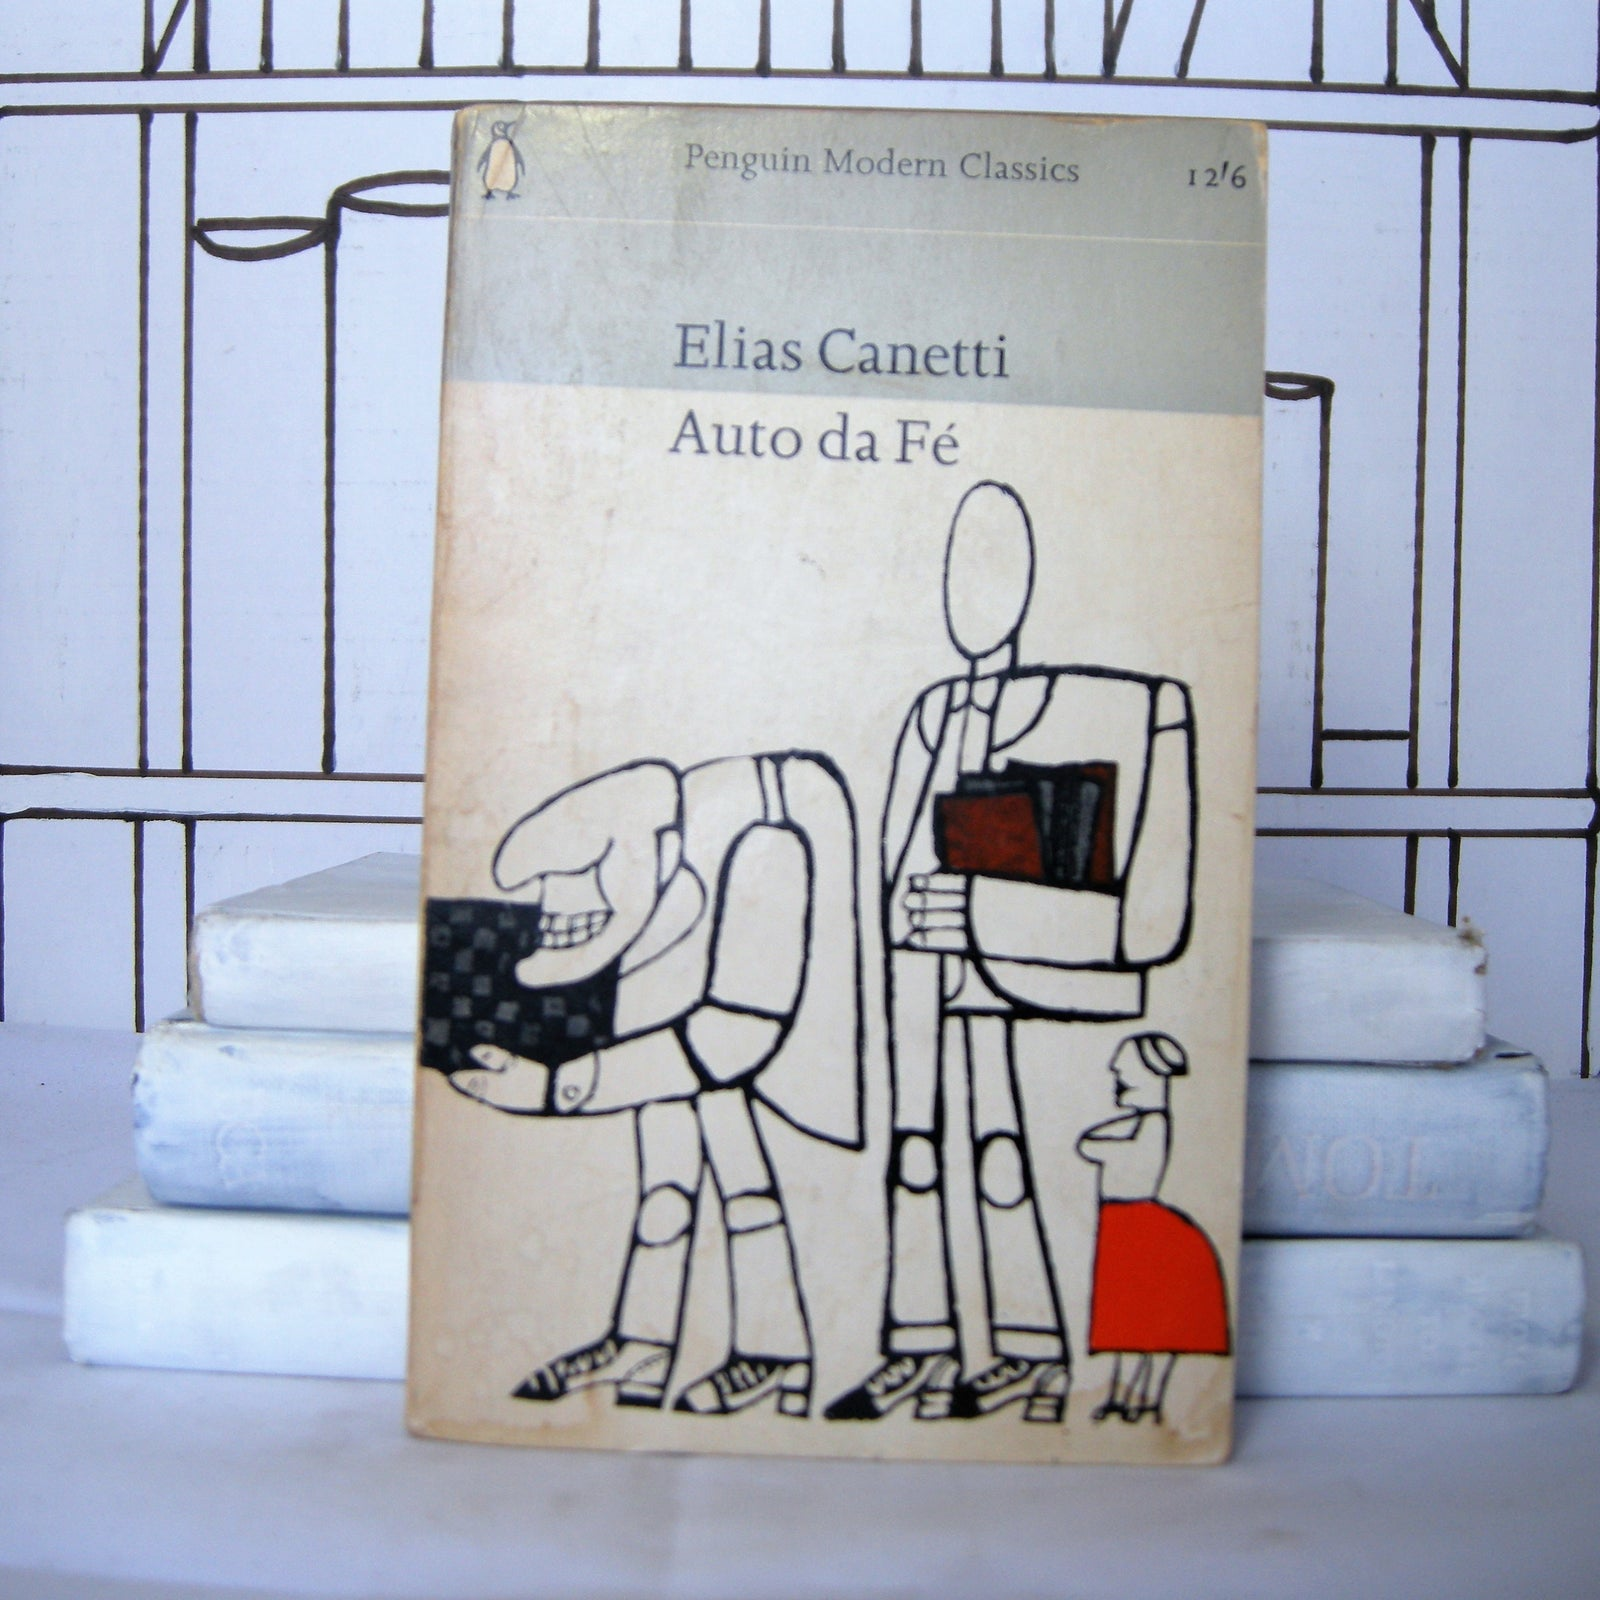 Auto da Fé by Elias Canetti (Vintage, Penguin) - Bluebell Abbey